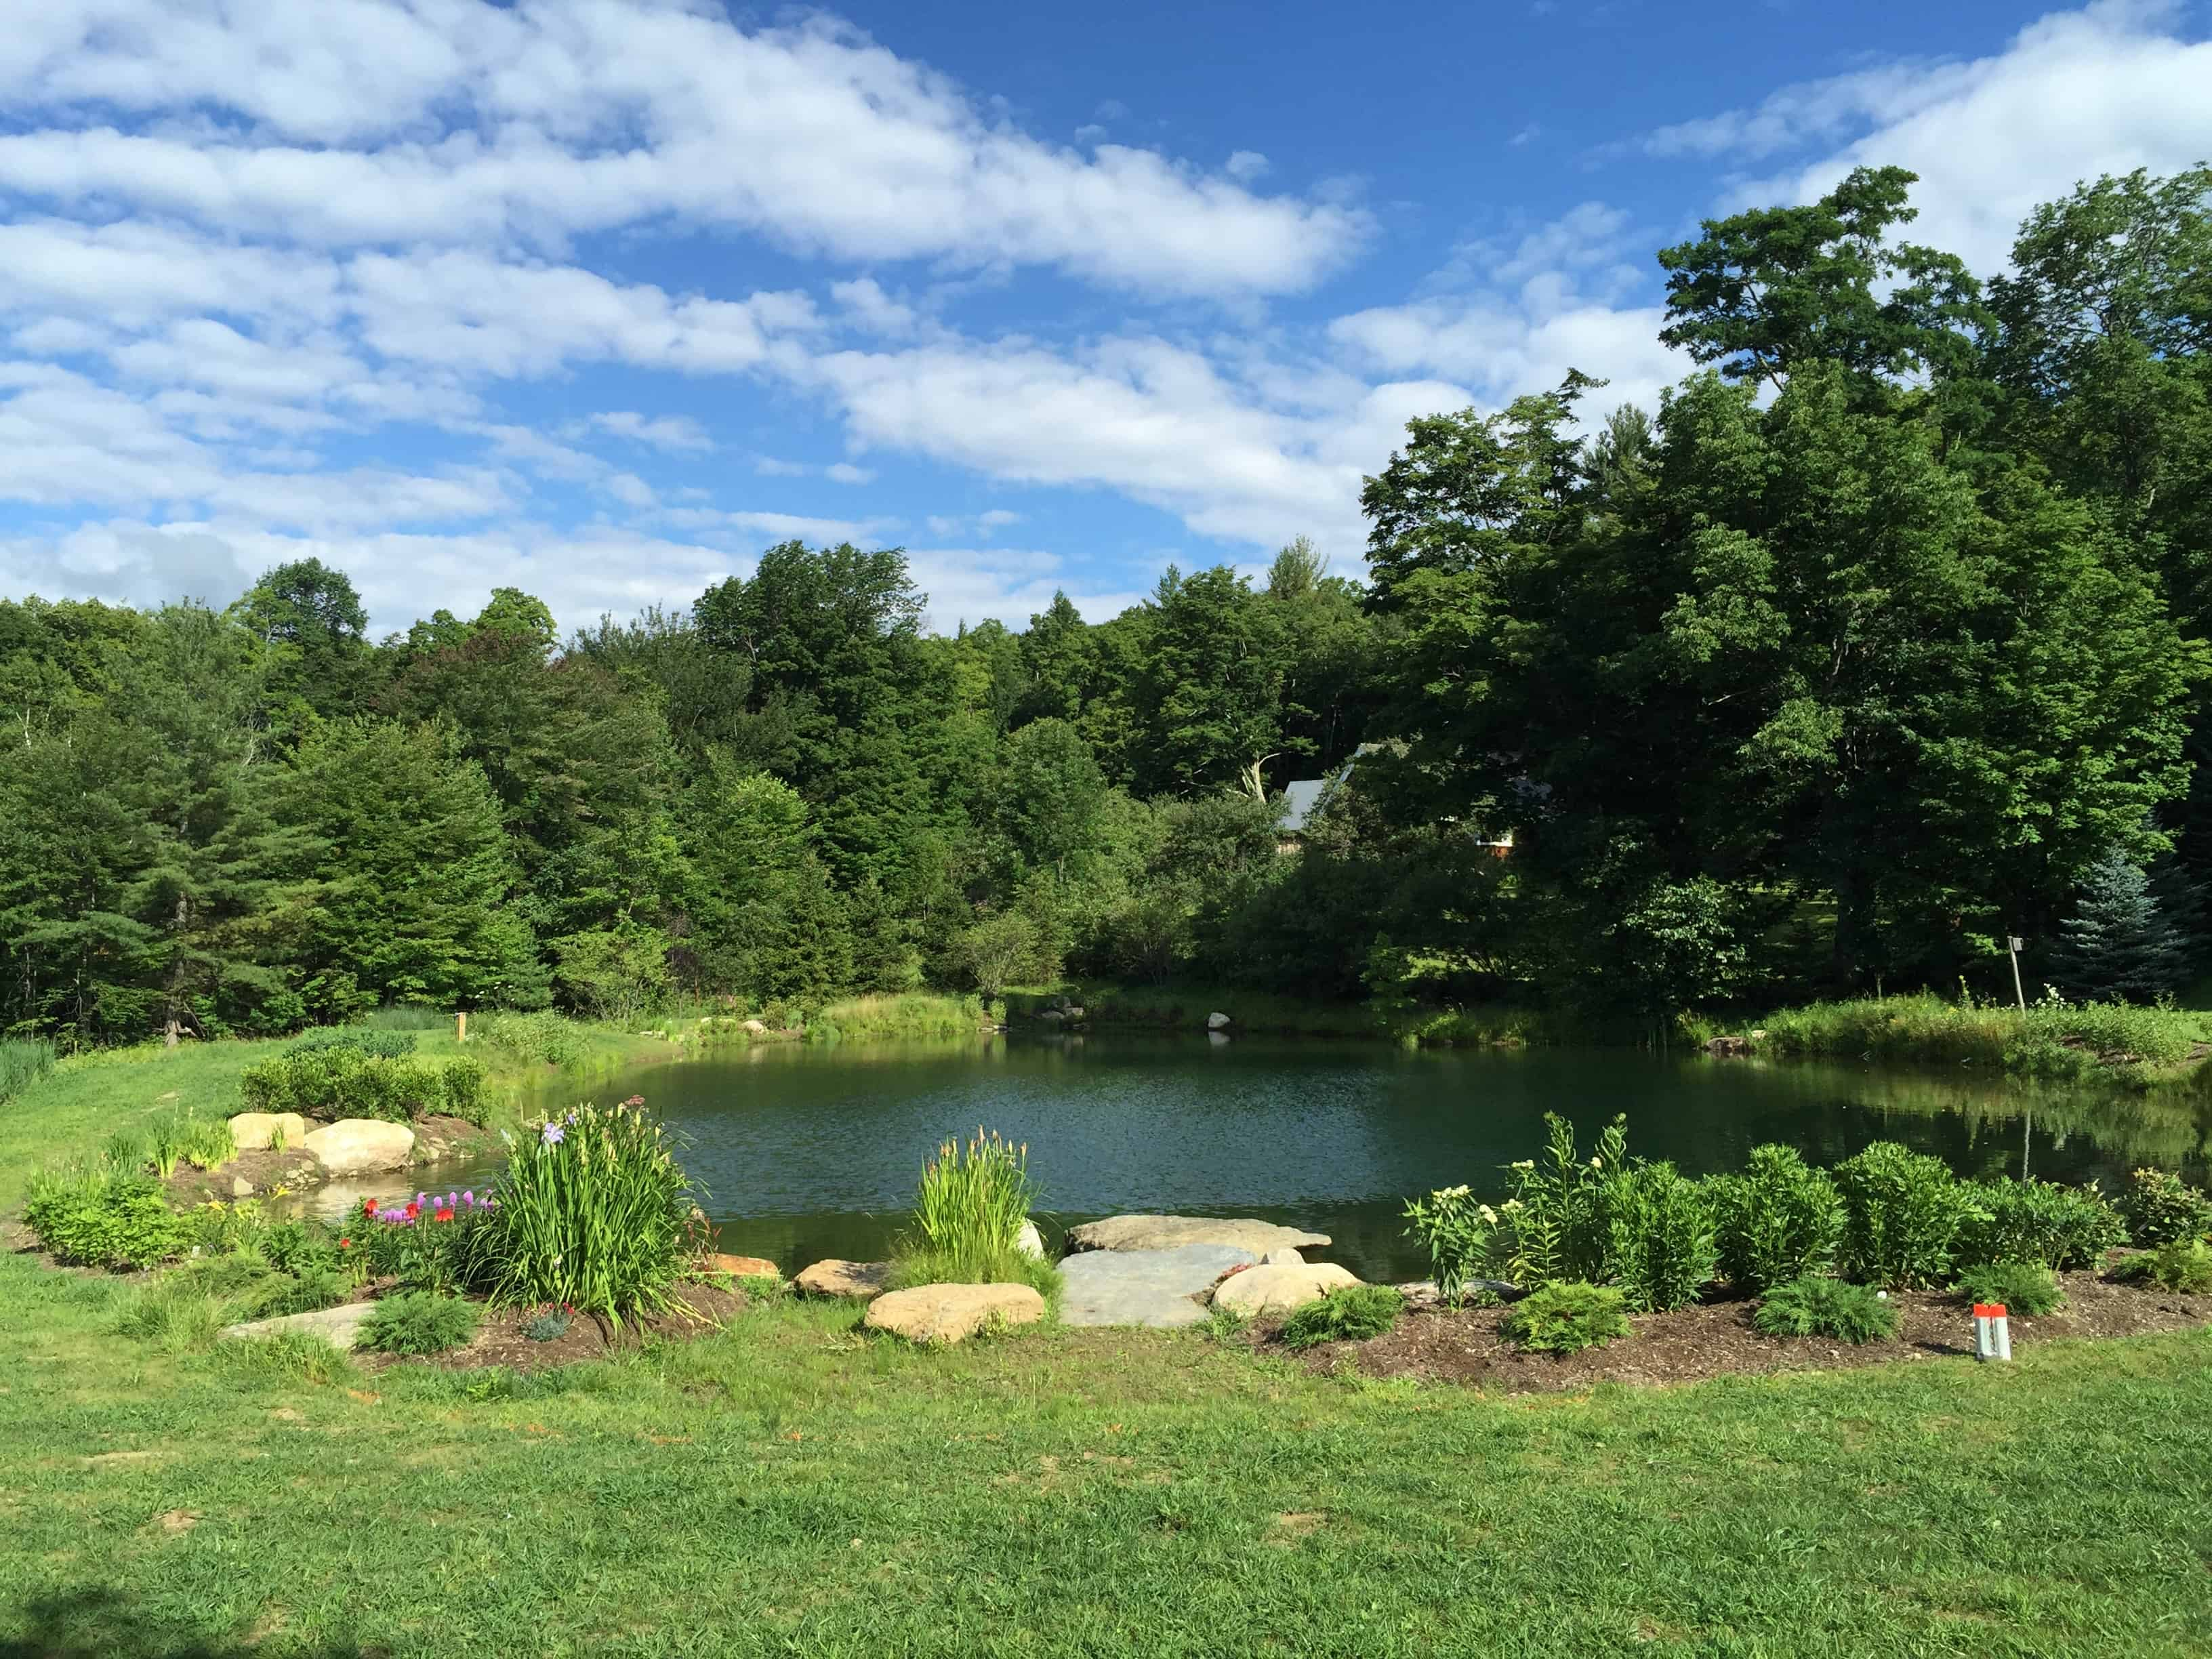 When the native plantings grow in, the pond's edge will be lush and inviting.